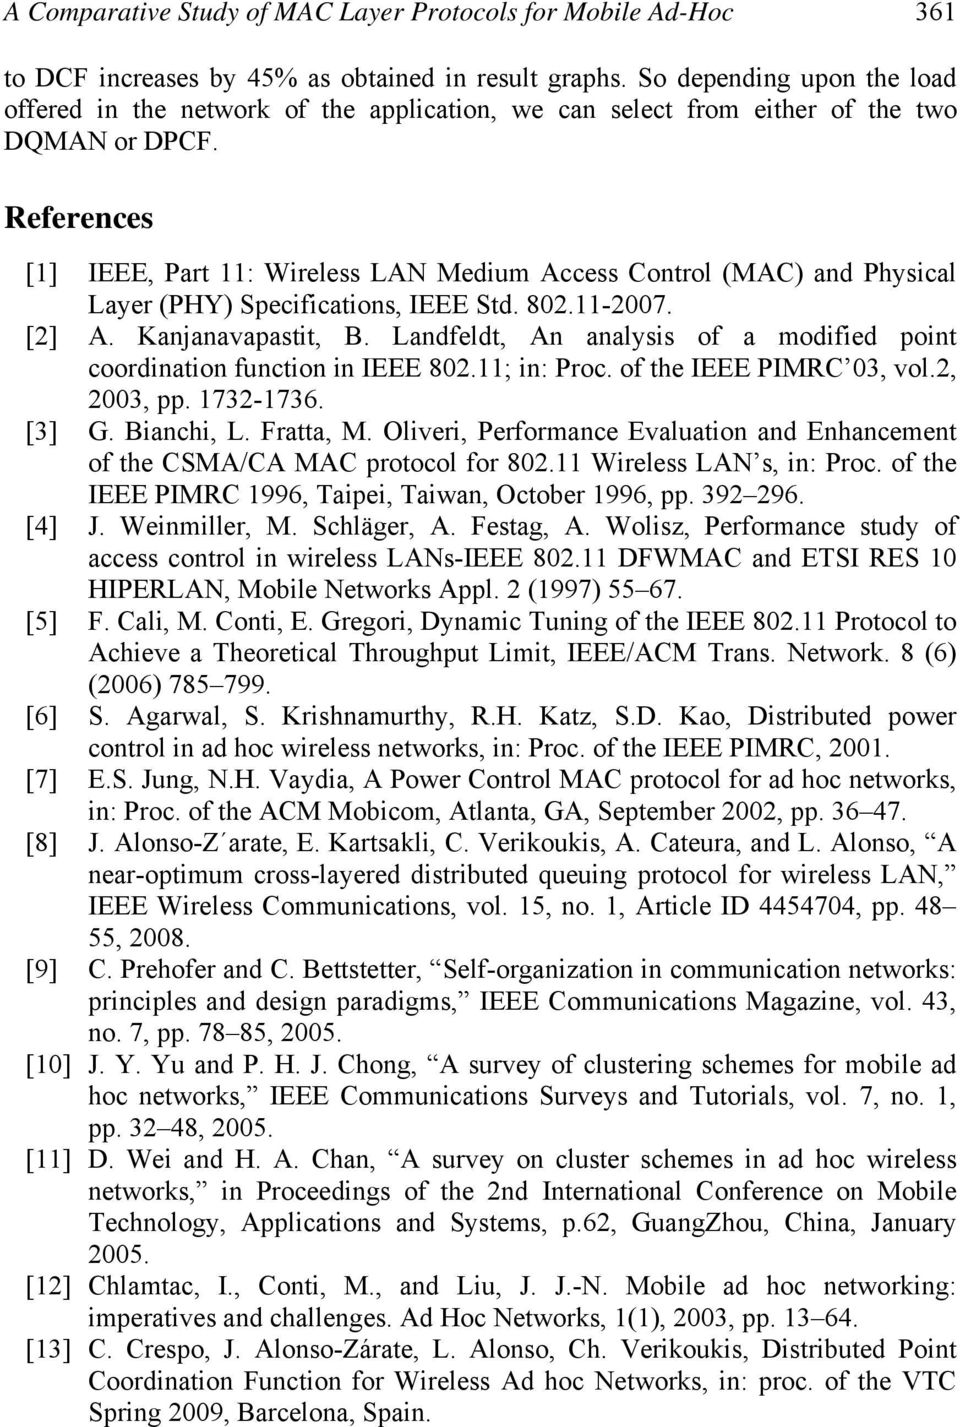 References [1] IEEE, Part 11: Wireless LAN Medium Access Control (MAC) and Physical Layer (PHY) Specifications, IEEE Std. 802.11-2007. [2] A. Kanjanavapastit, B.